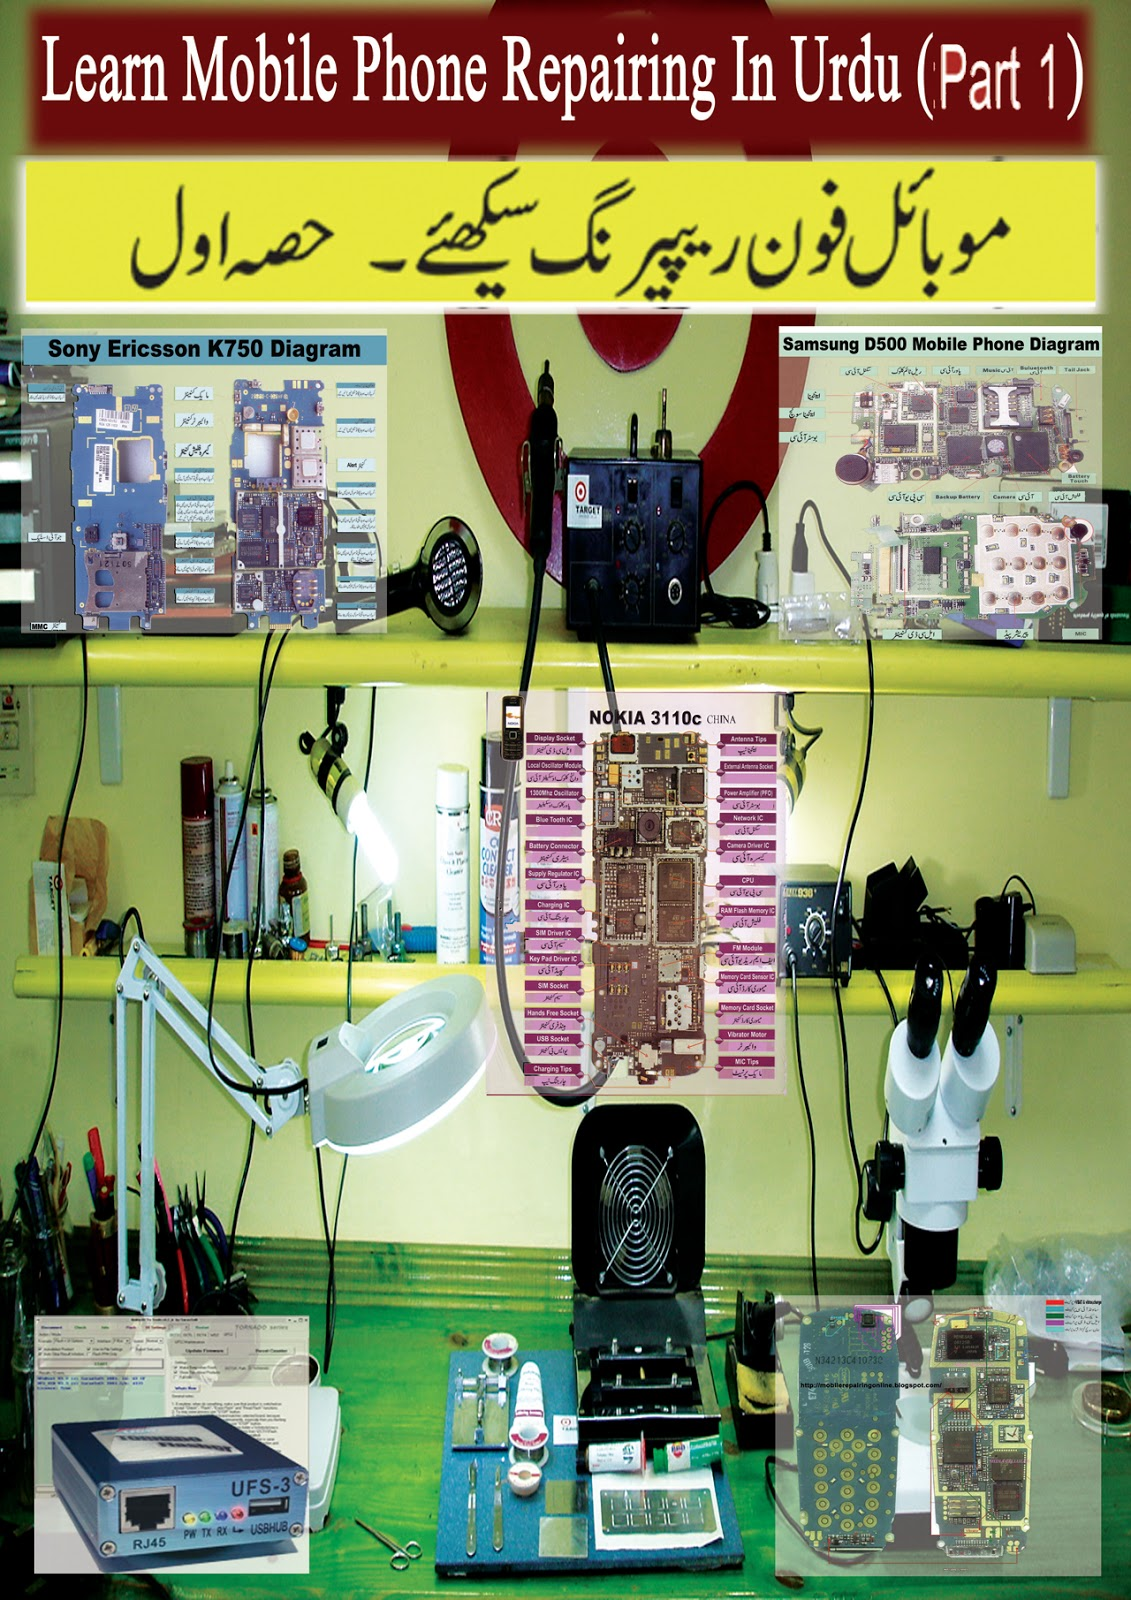 Mobile repairing diagram in urdu mobilerepairingonline mobile repairing diagrams urdu books ccuart